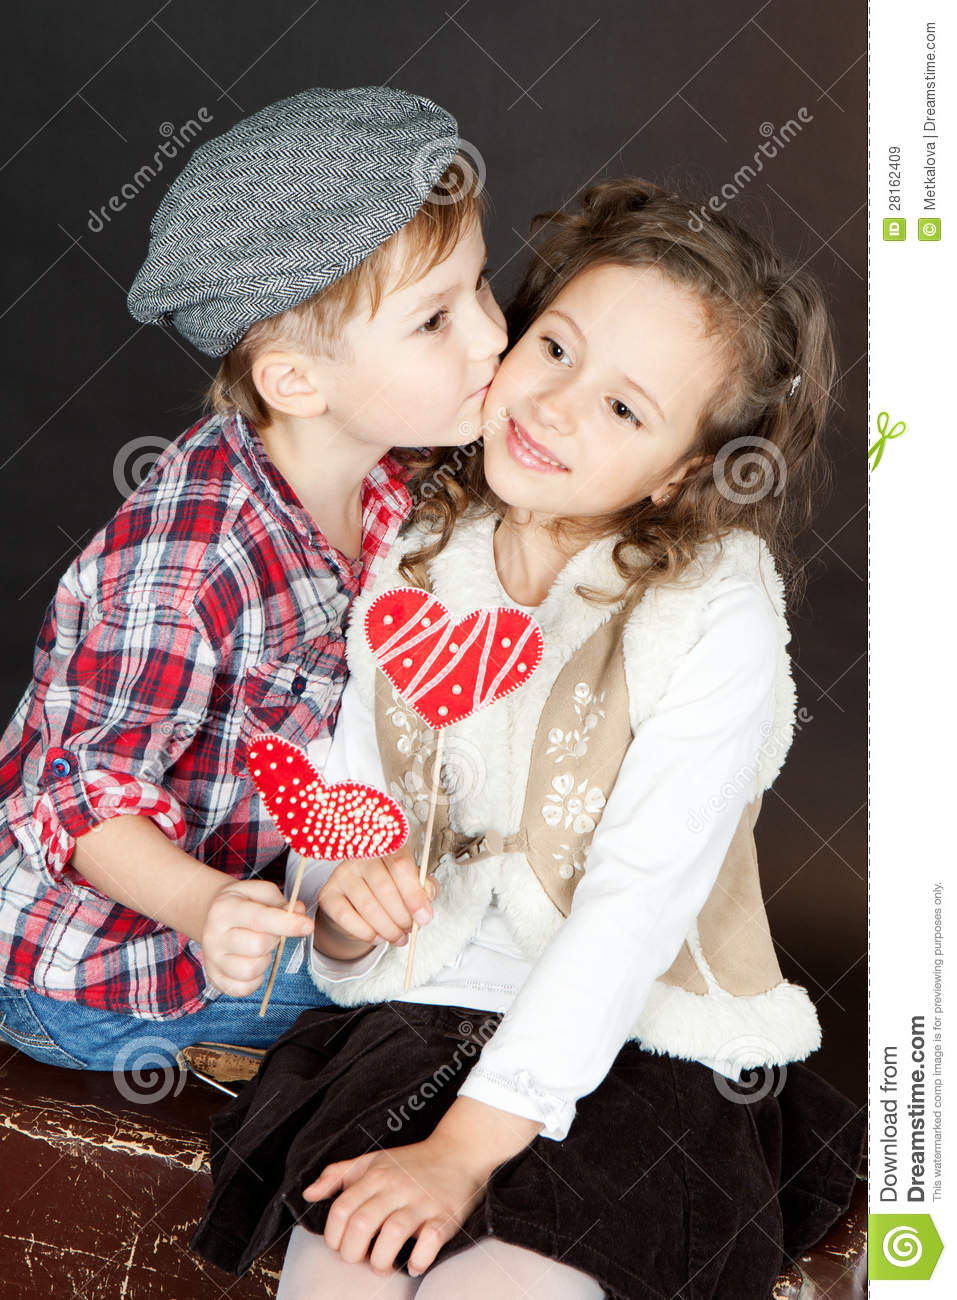 Girl Propose To Boy Wallpaper With Quotes Funny Little Couple In Love Royalty Free Stock Images